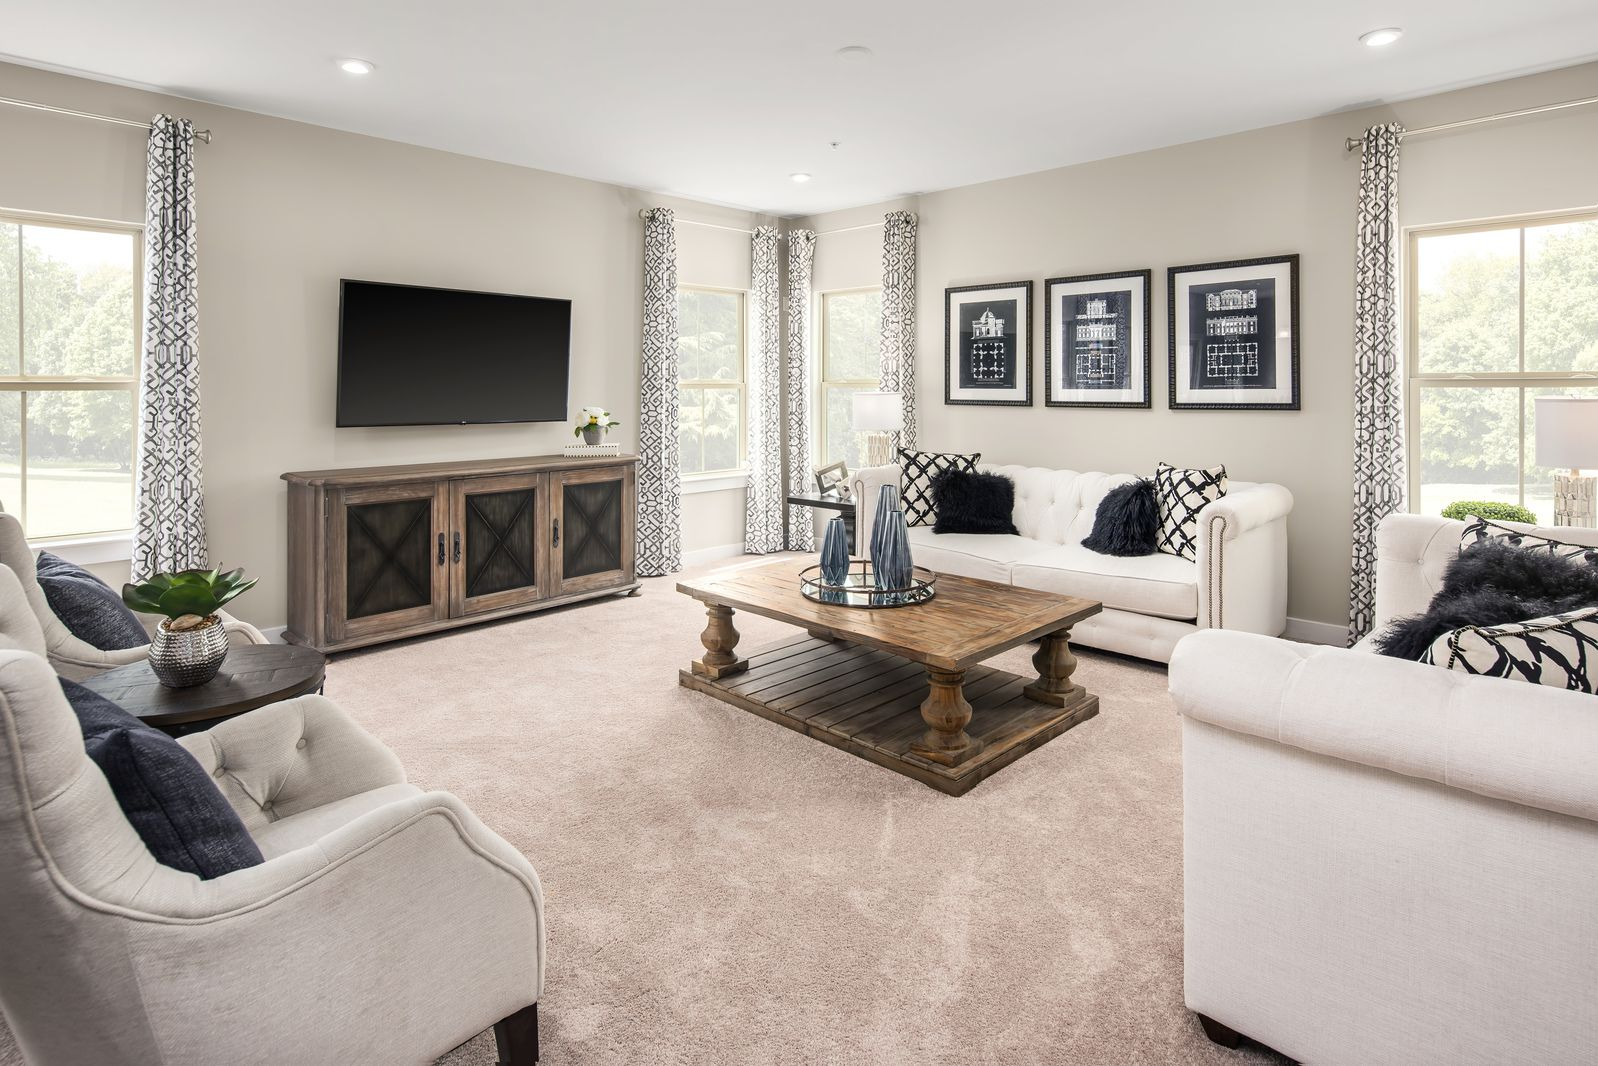 Living Area featured in the Roanoke By Ryan Homes in Washington, MD